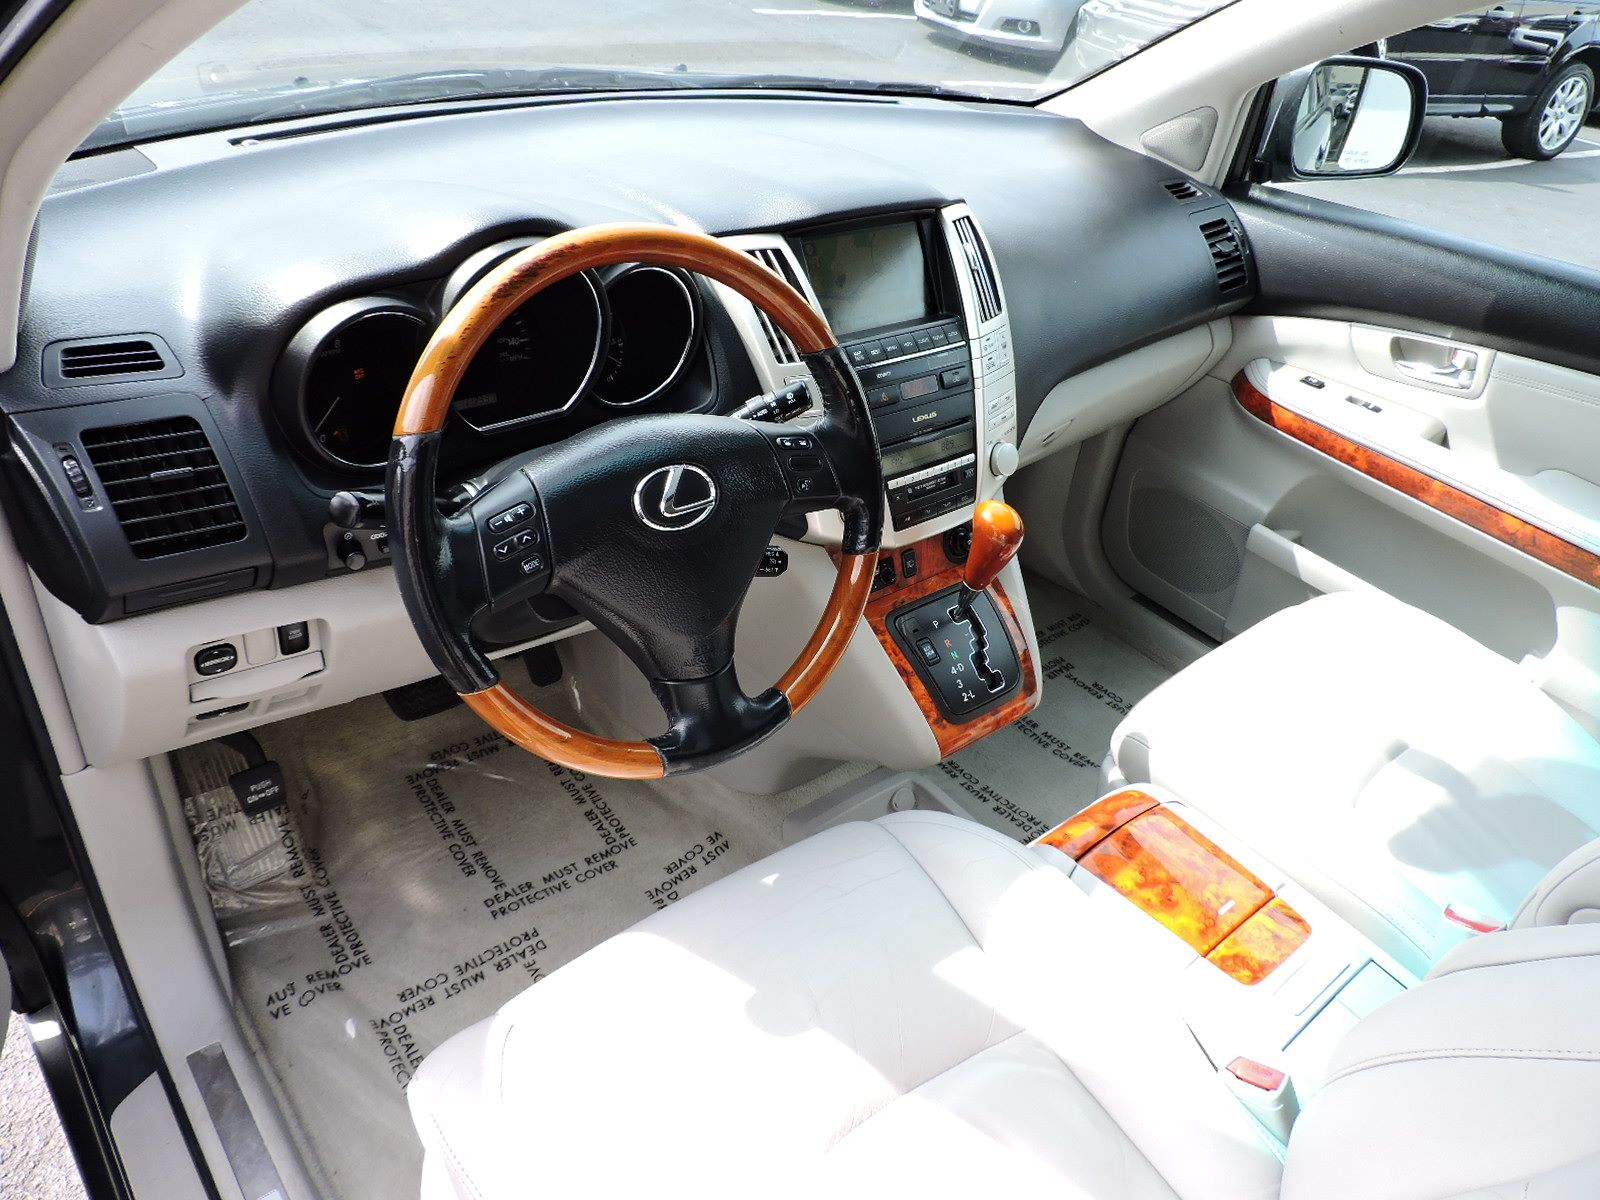 Used 2005 Lexus RX 330 at Saugus Auto Mall